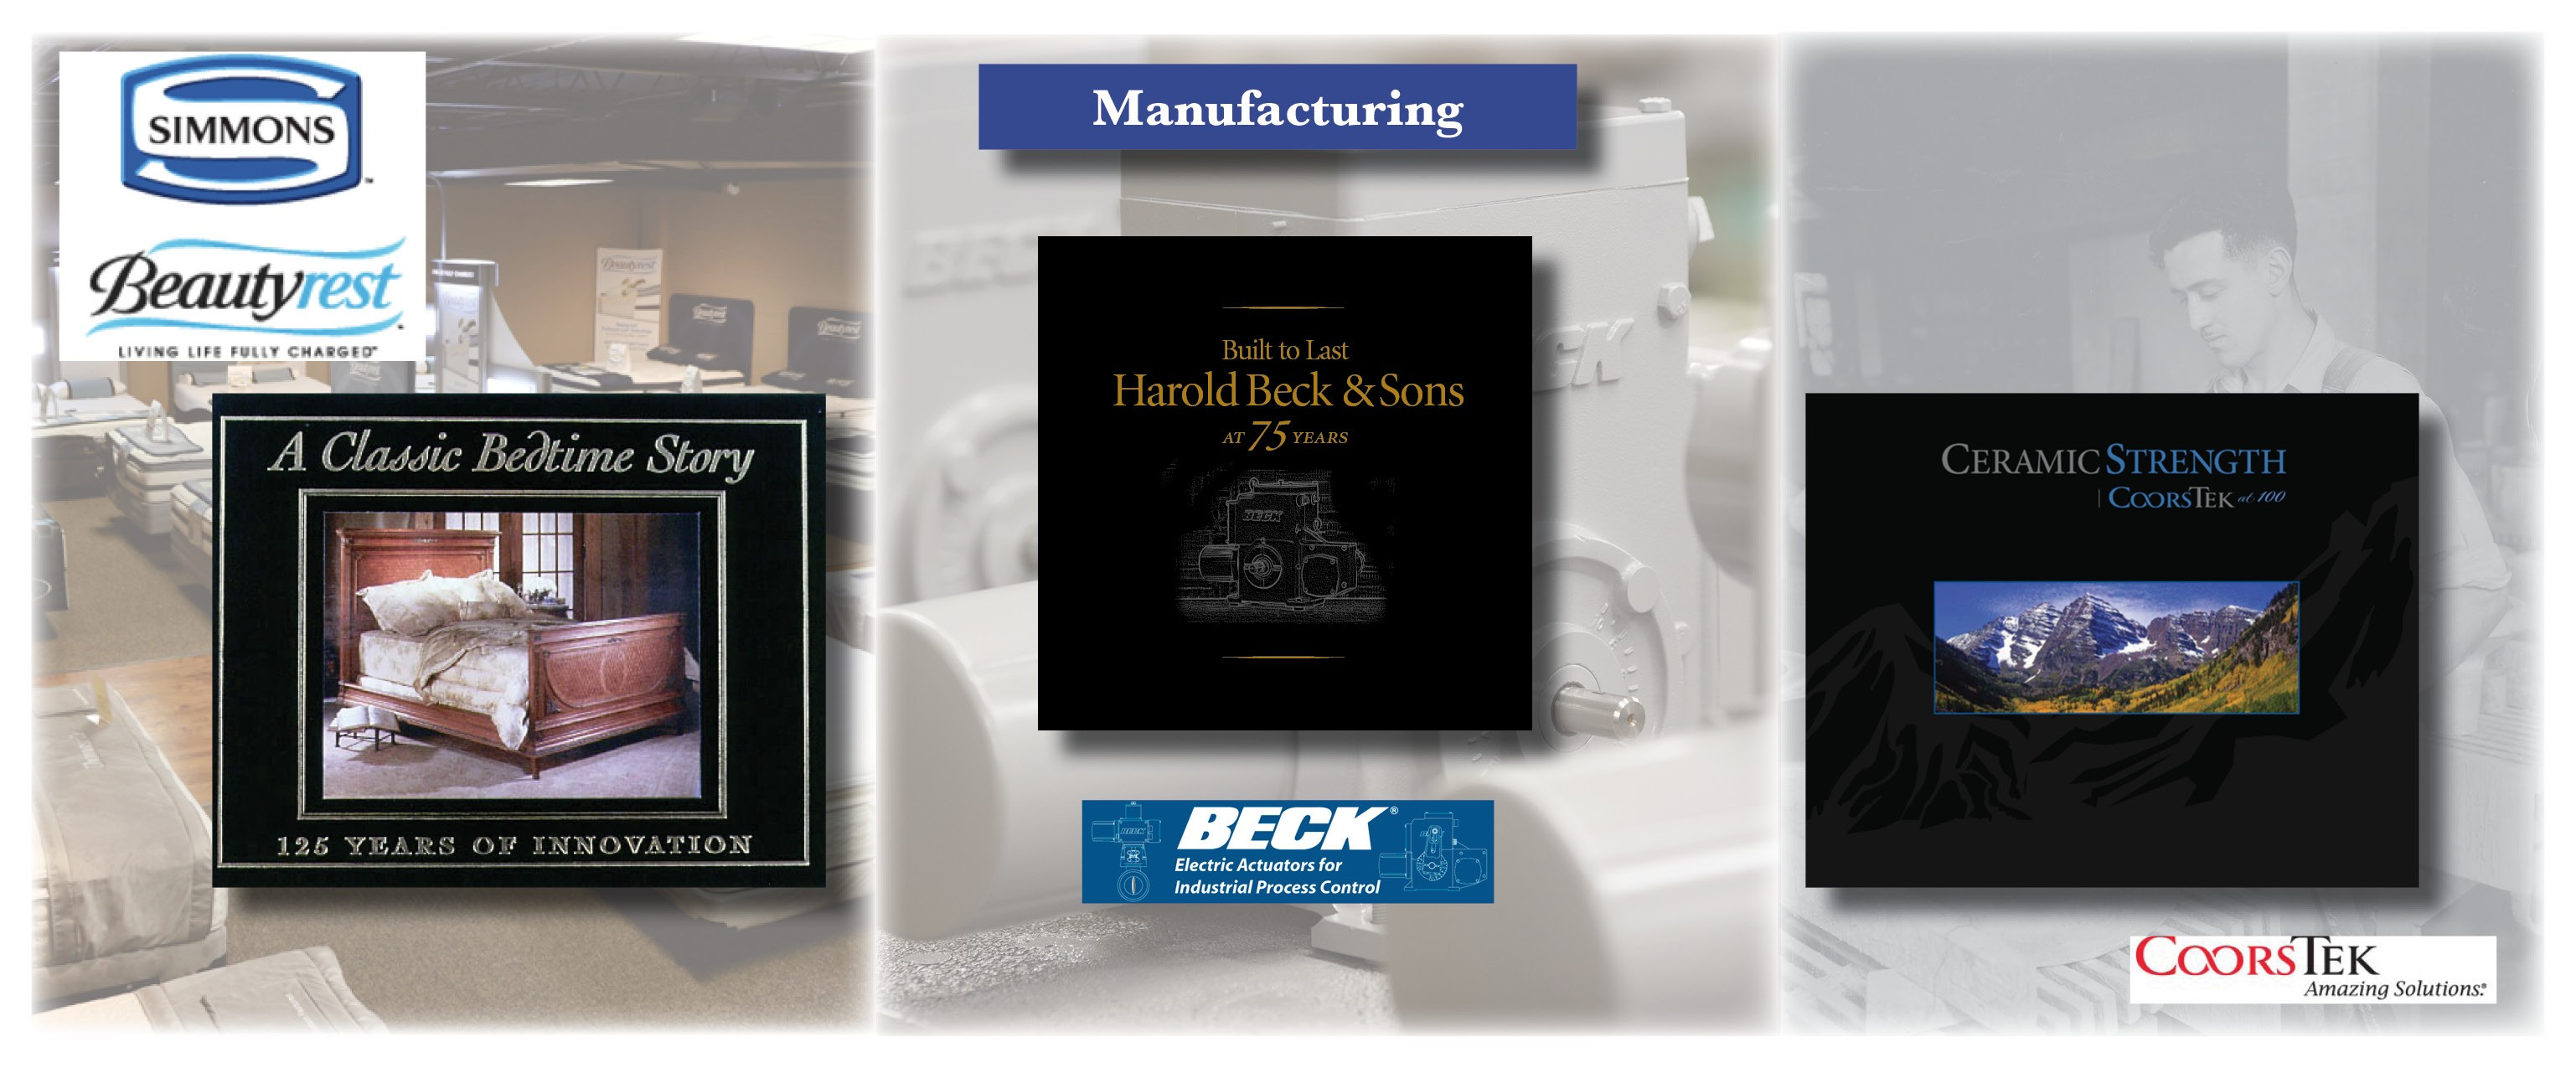 Is your manufacturing company celebrating a milestone anniversary? Let Bookhouse Group, Inc. create a commemorative book for you.